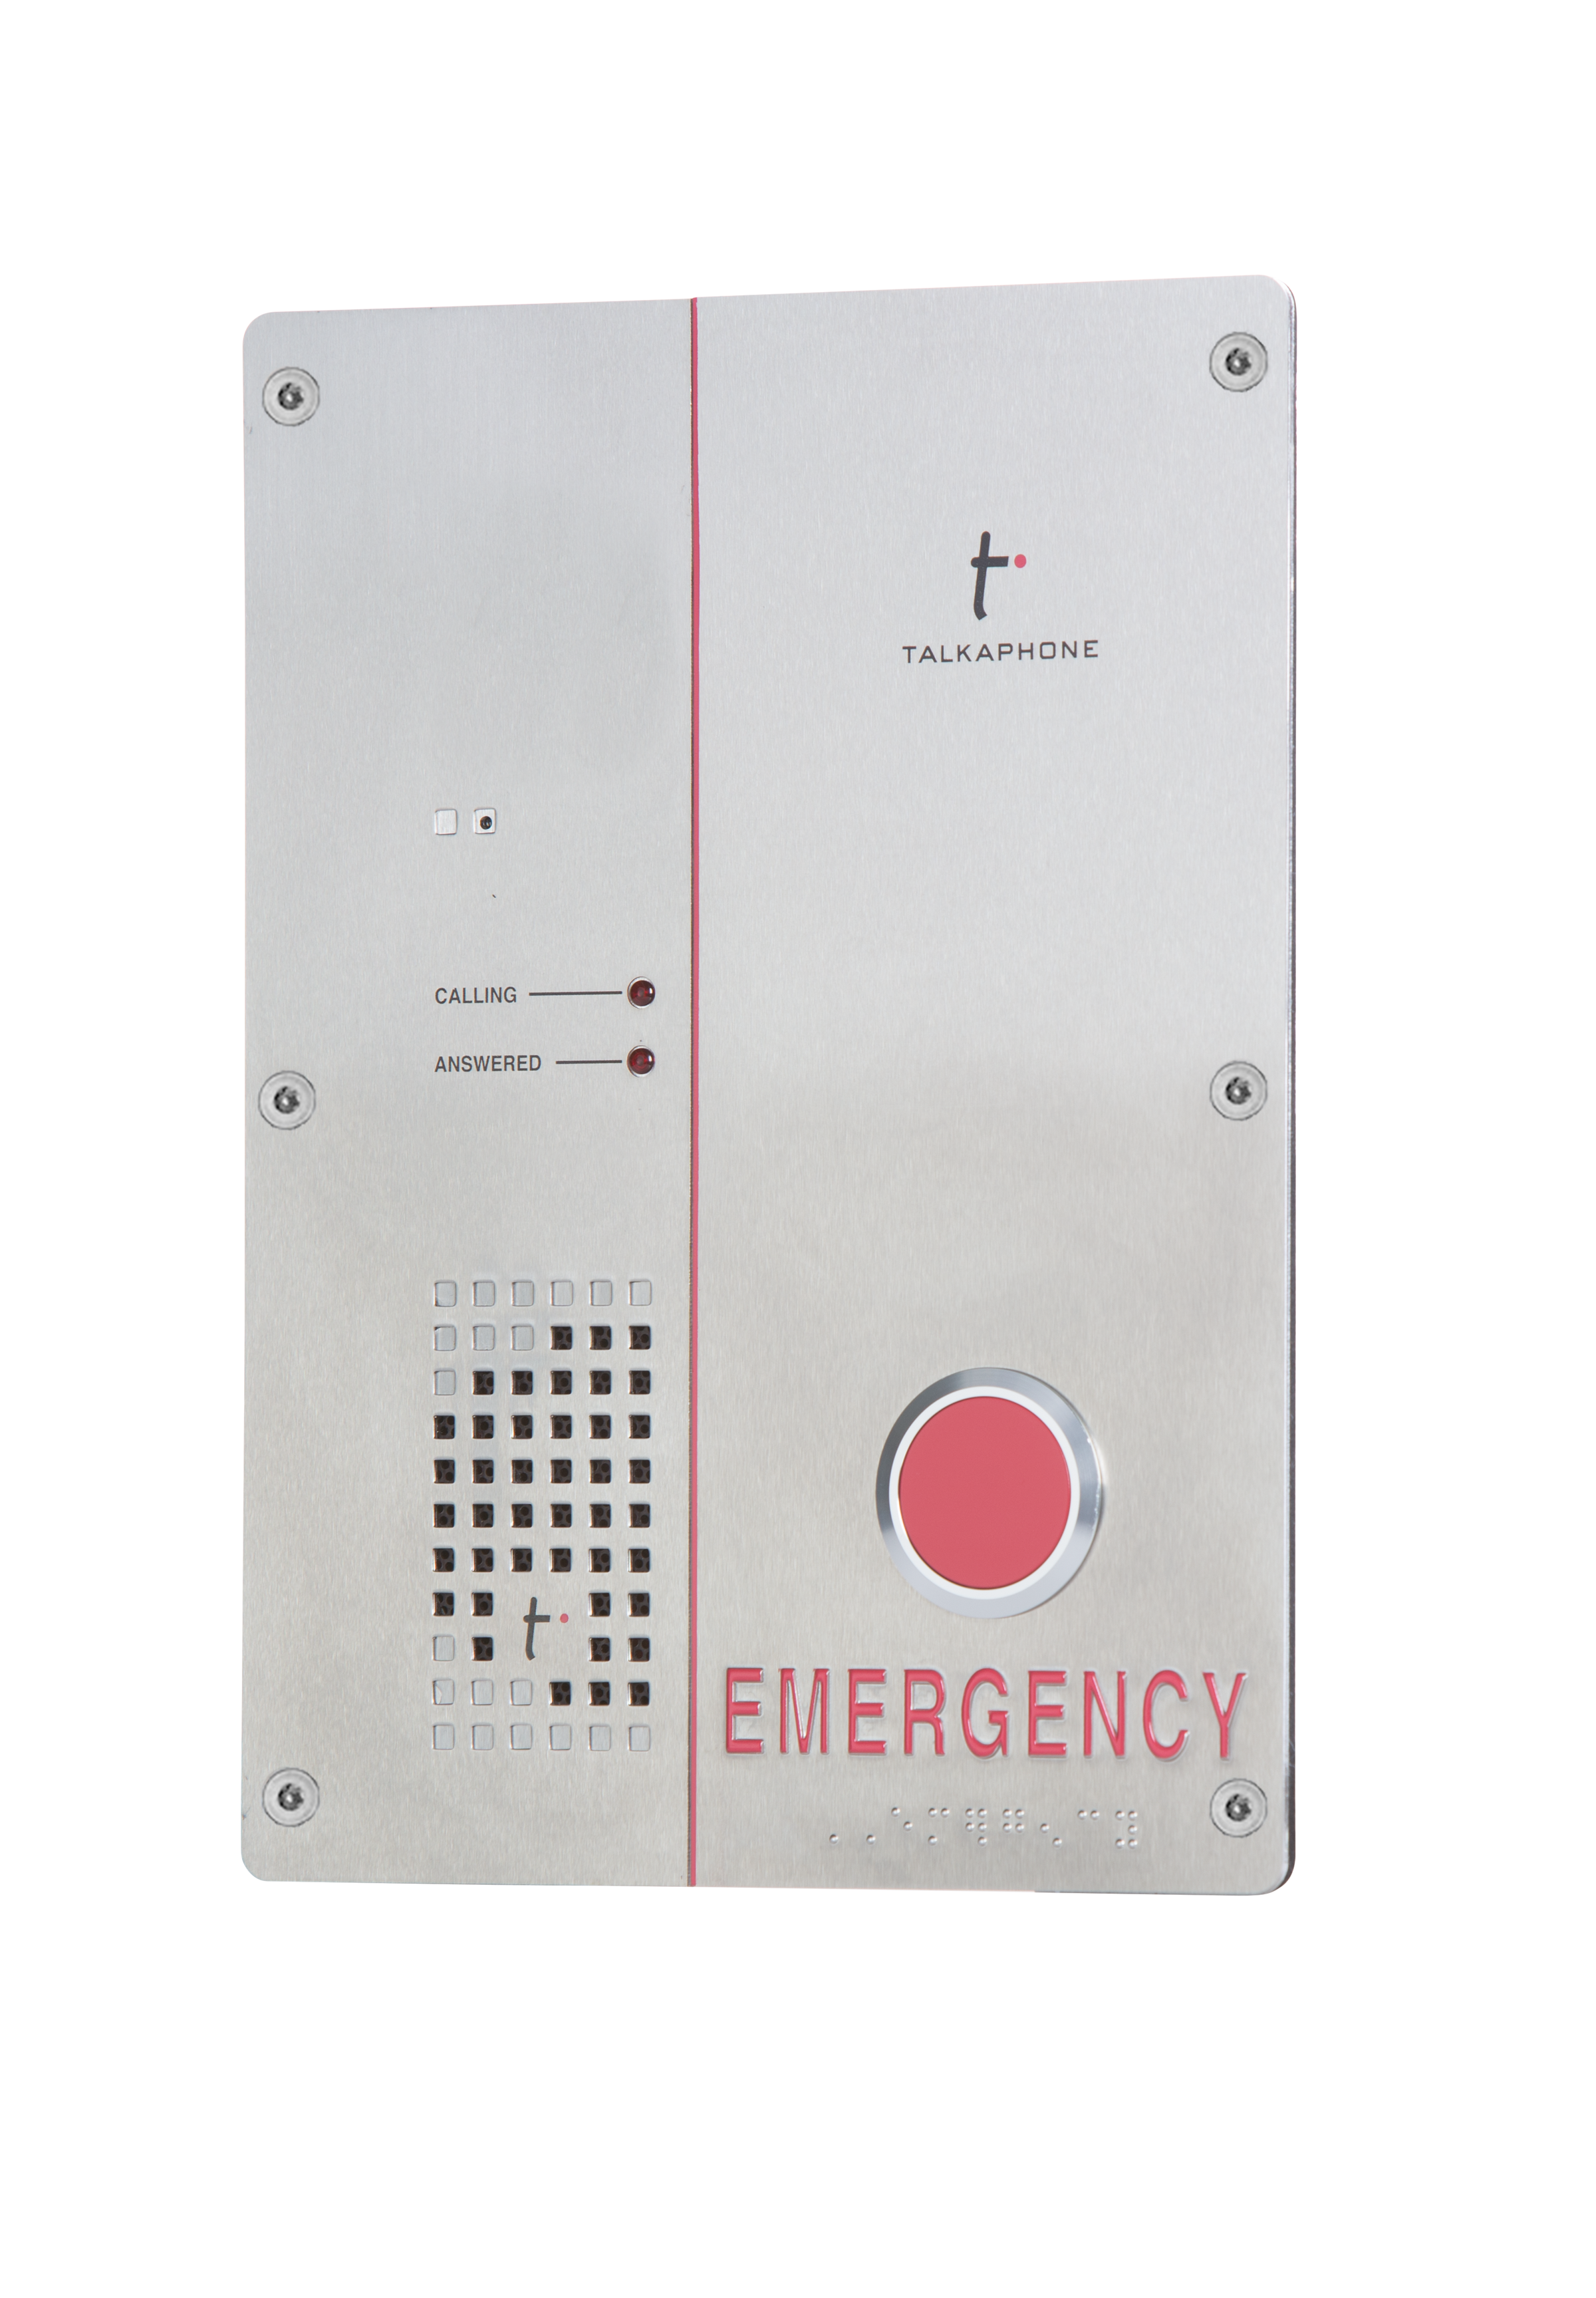 VOIP-500E TALK A PHONE NATIVE VOIP OUTDOOR EMERGENCY PHONE ************************** CLEARANCE ITEM- NO RETURNS *****ALL SALES FINAL****** **************************